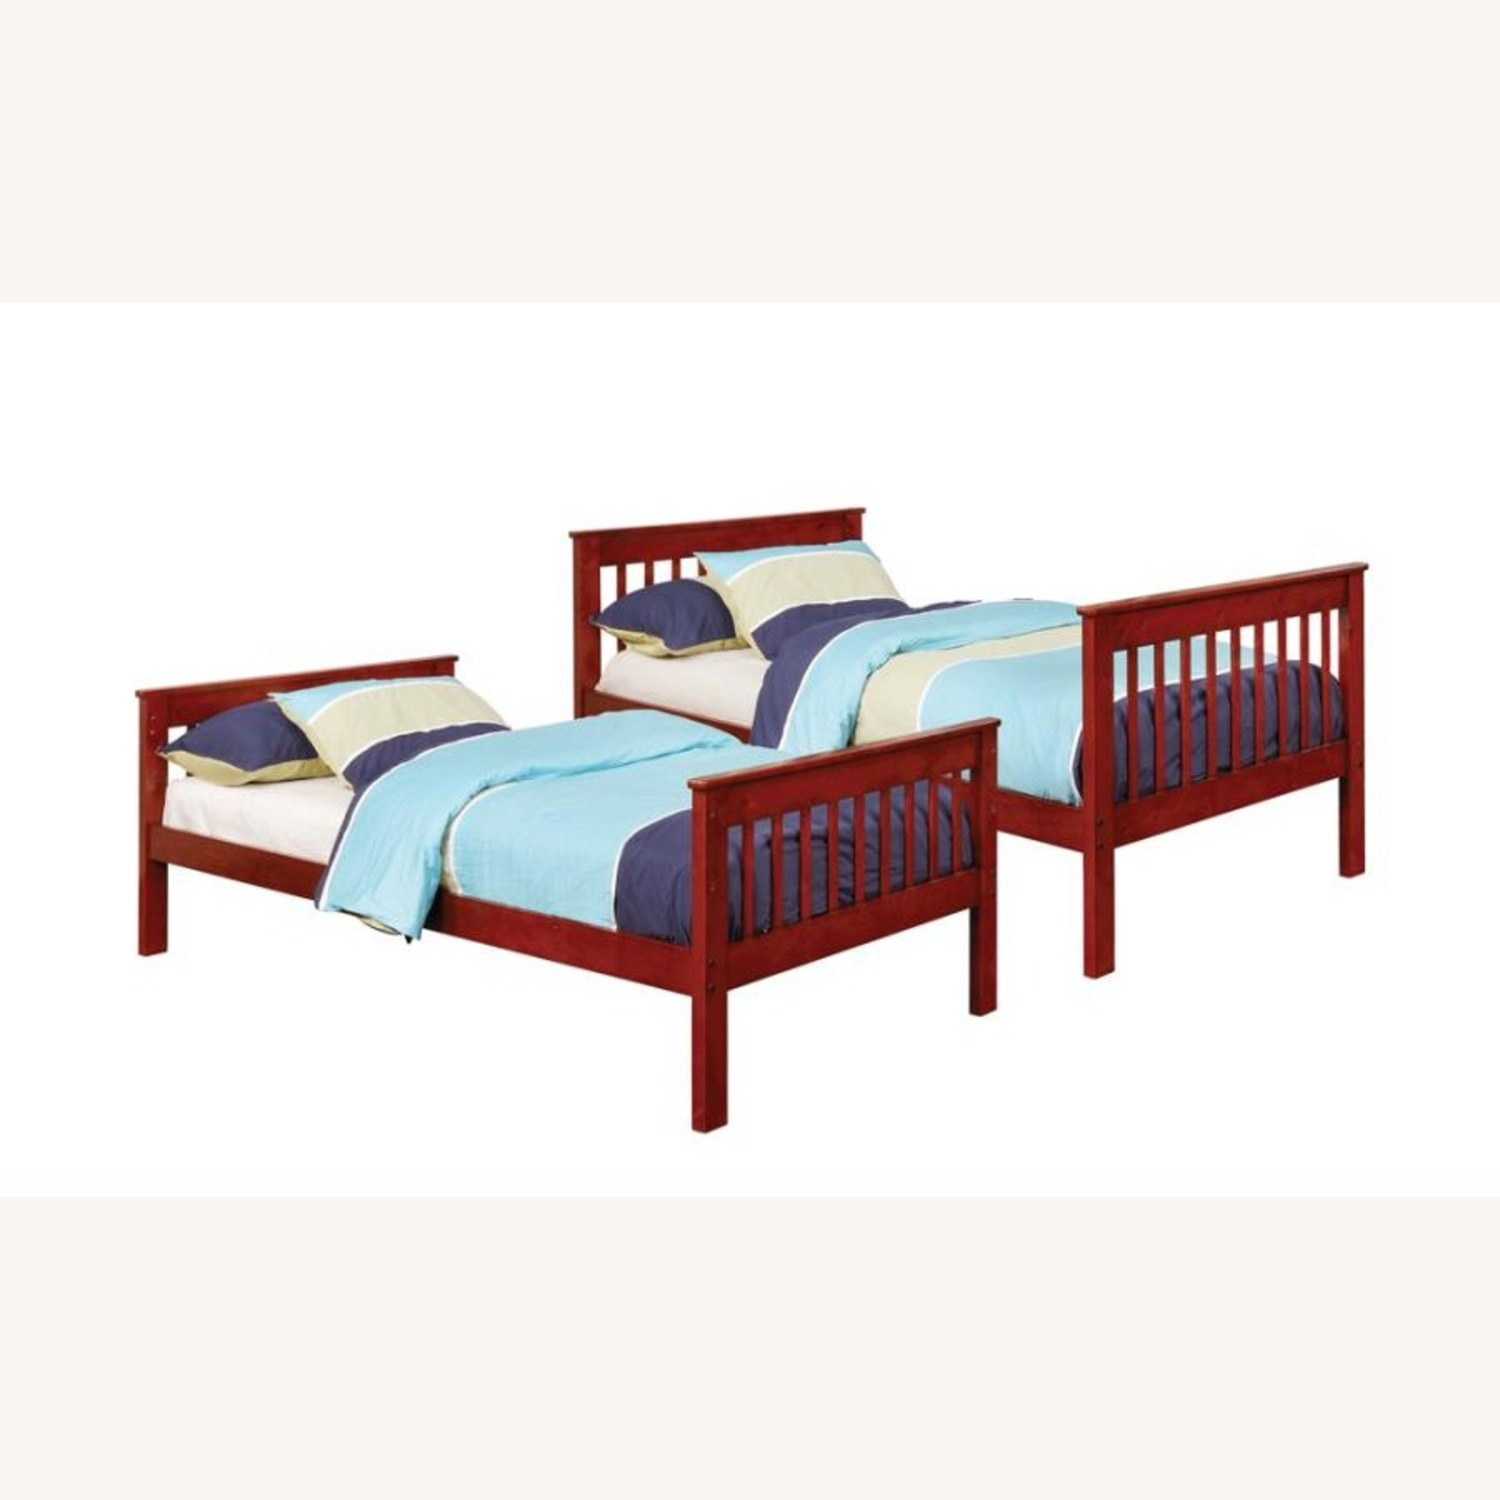 Bunk Bed In Chestnut W/ Slatted Head & Footboards - image-0